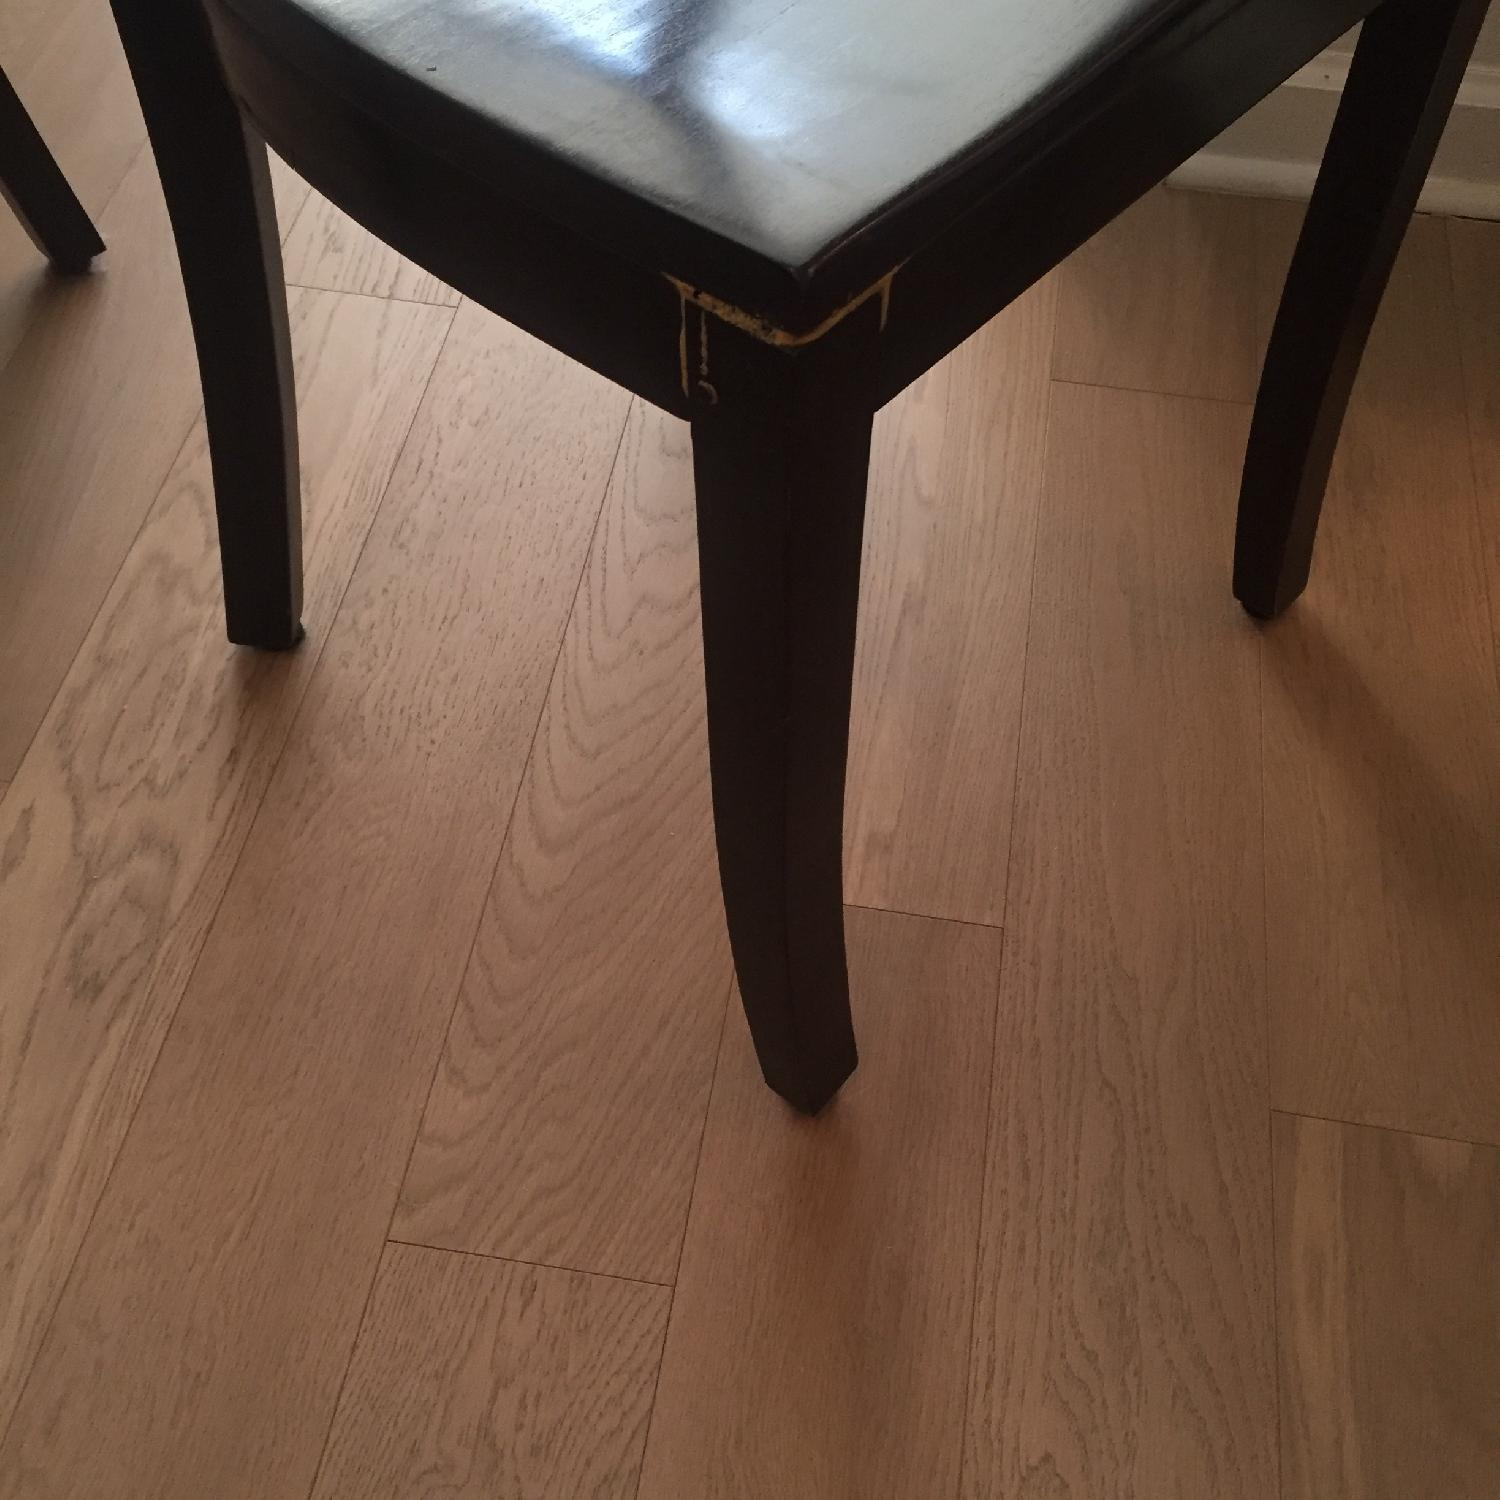 Crate & Barrel Dining Room Table w/ 6 Chairs - image-5